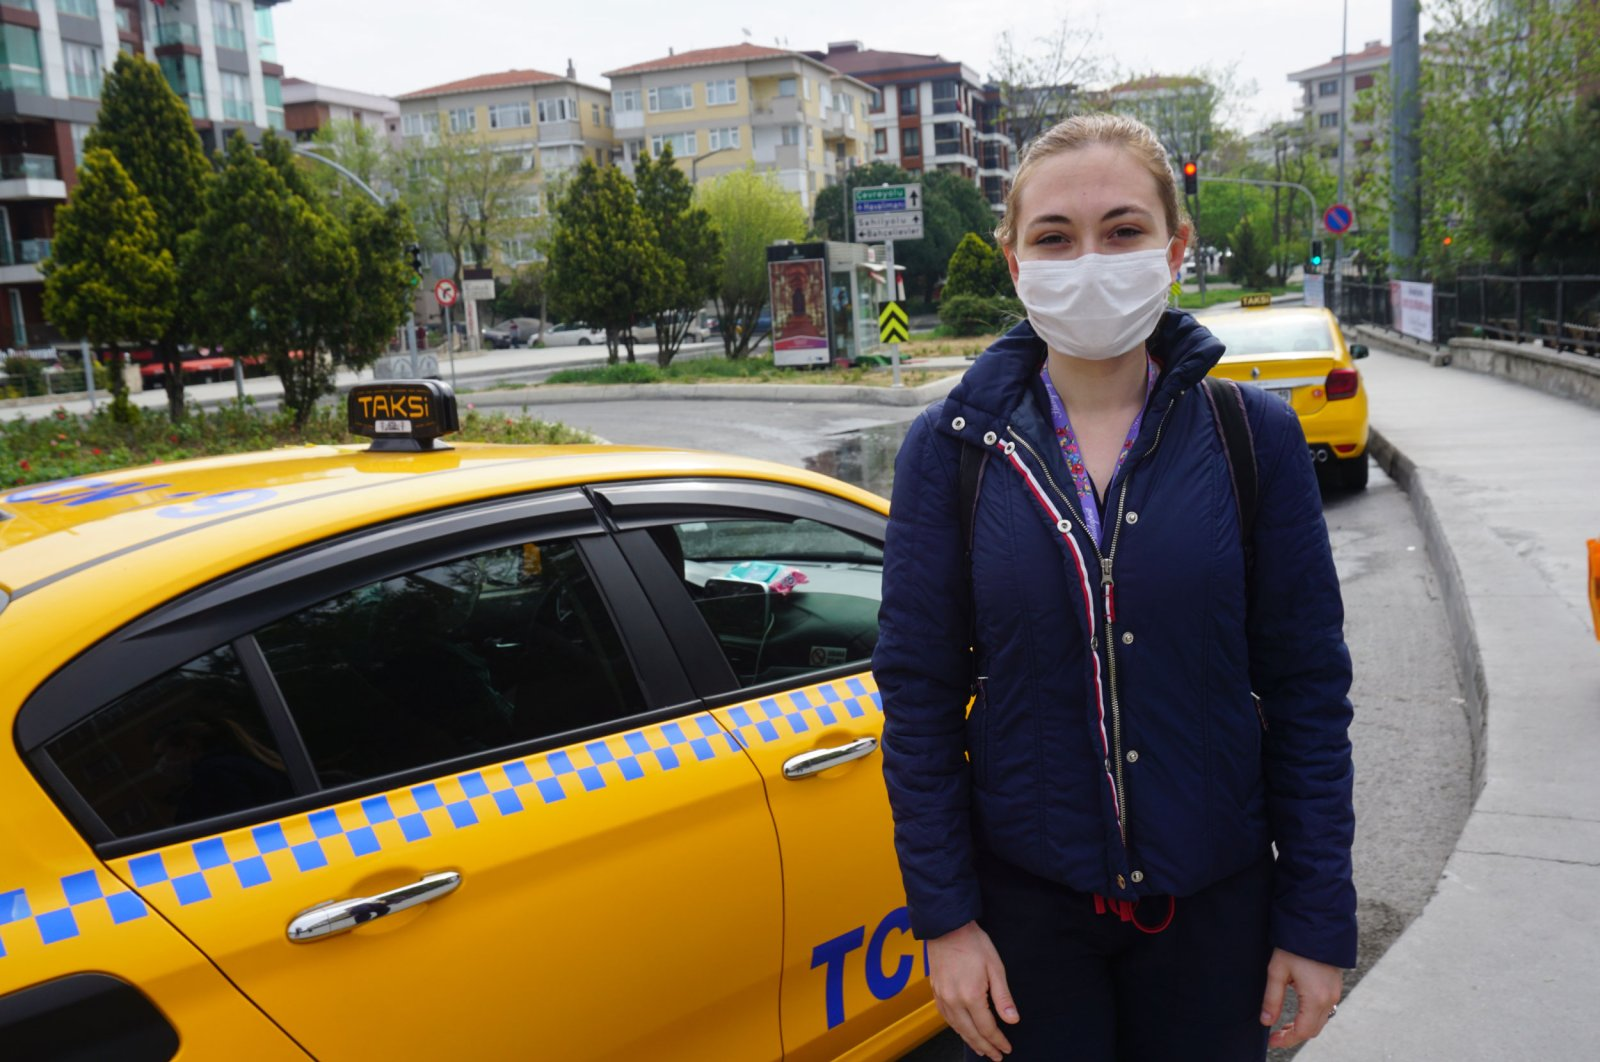 Naz Alibaşoğlu, a health worker that had finished her shift and benefitted from the taxi service, expresses her admiration of the practice, Istanbul, May 1, 2020. (DHA Photo)